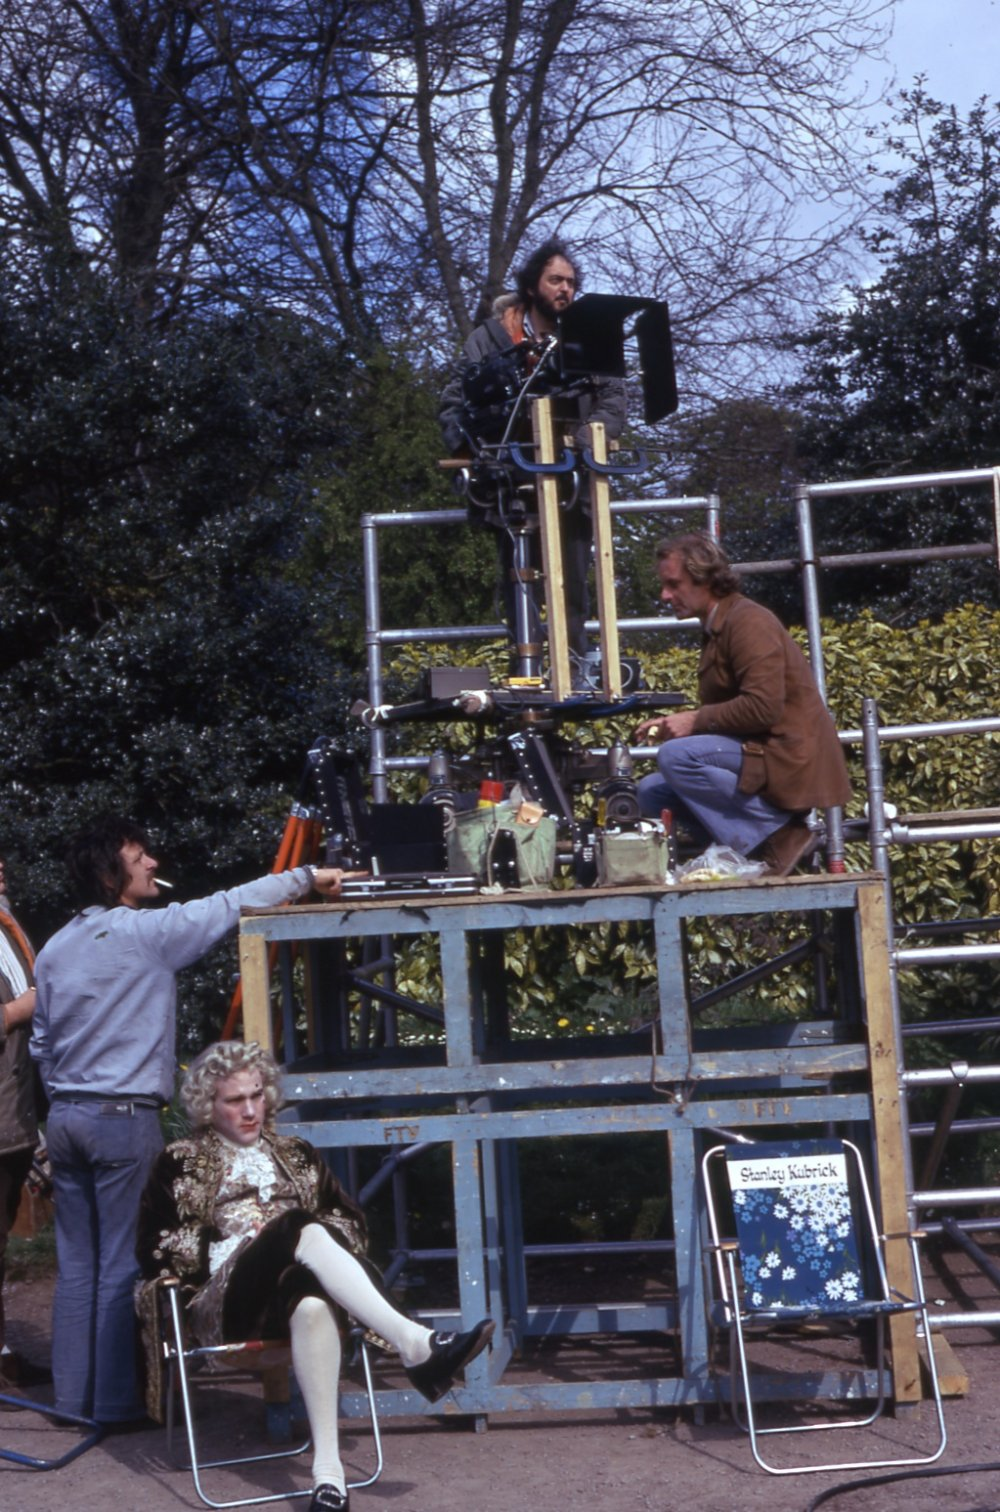 Surveilling the scene from on high. Notice the floral garden chair with the words 'Stanley Kubrick' emblazoned on the back – a picnic-ready alternative to the traditional director's chair